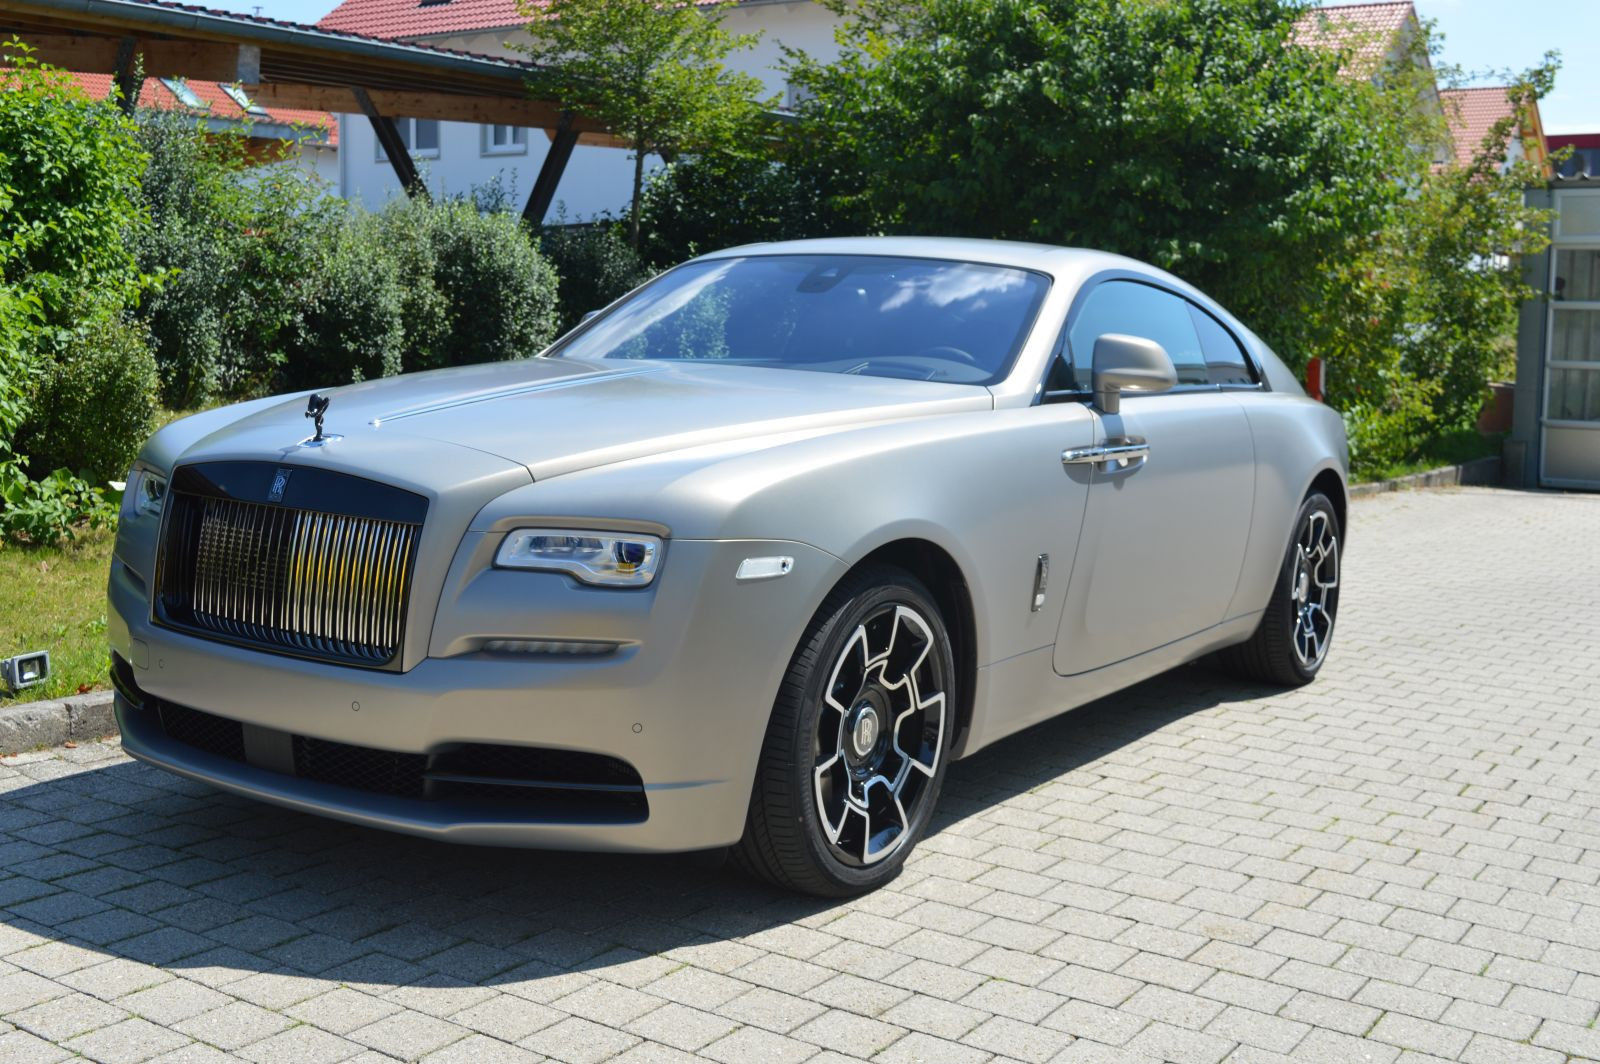 Rolls Royce Wraith Black Badge Luxury Pulse Cars Germany For Sale On Luxurypulse